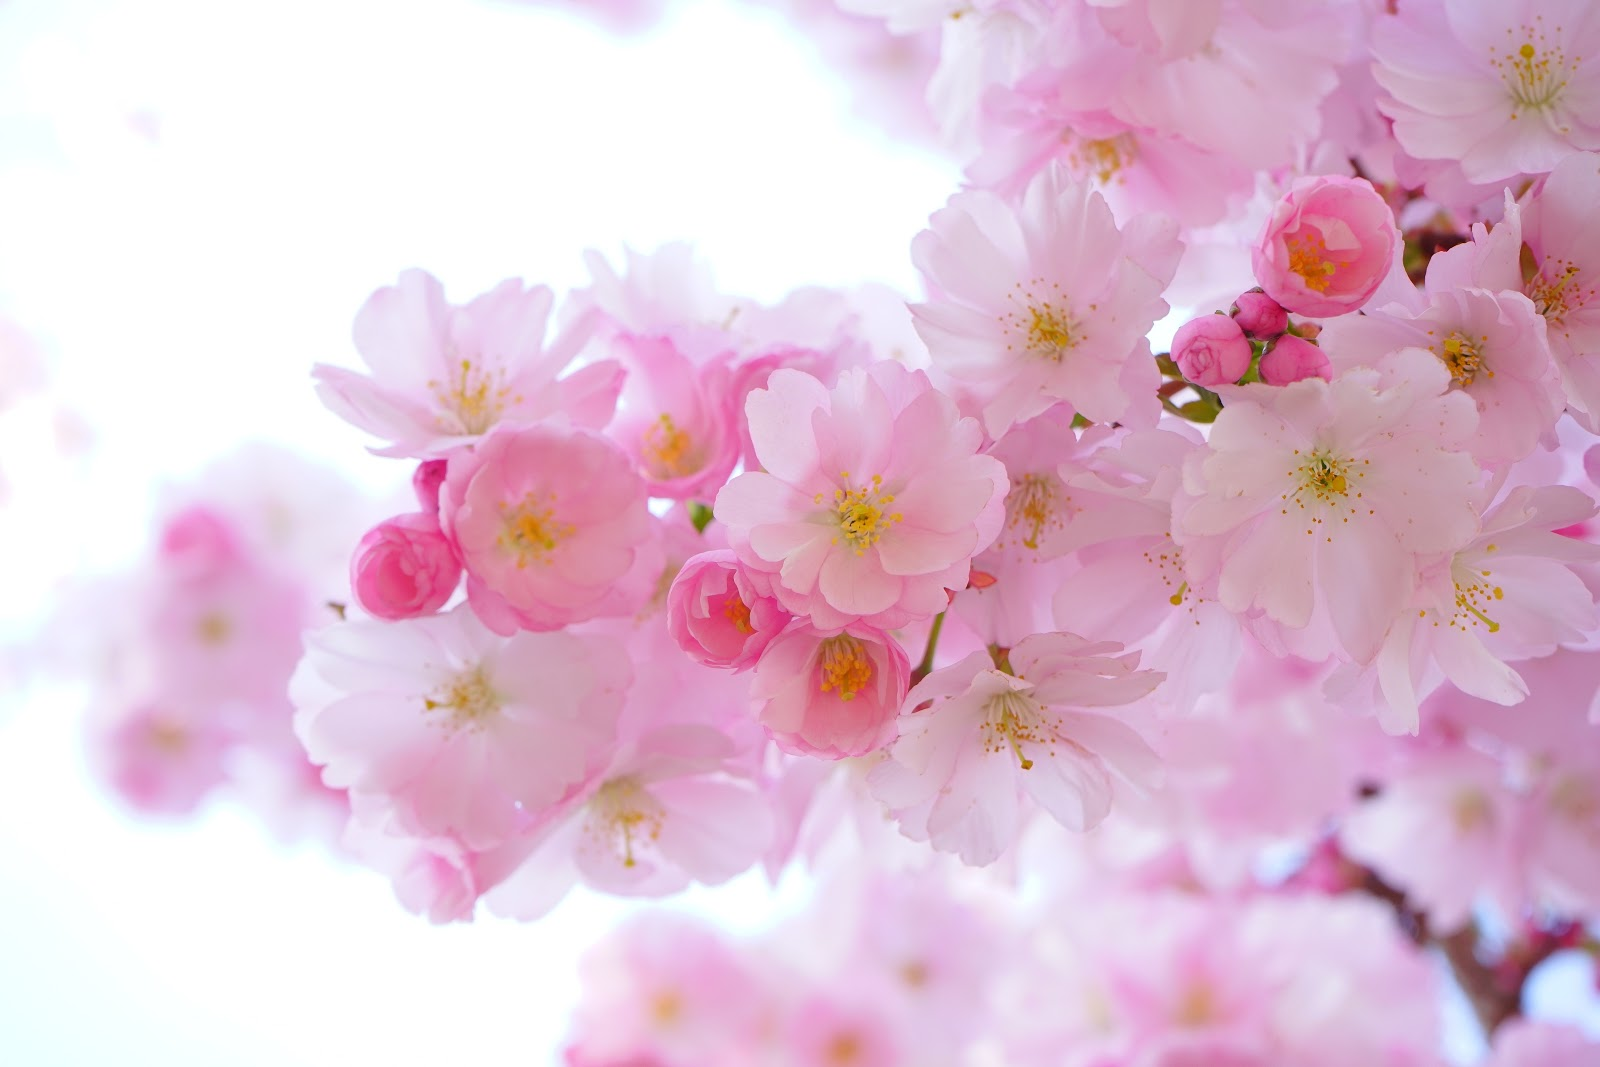 japanese-cherry-trees, flower wallpaper images